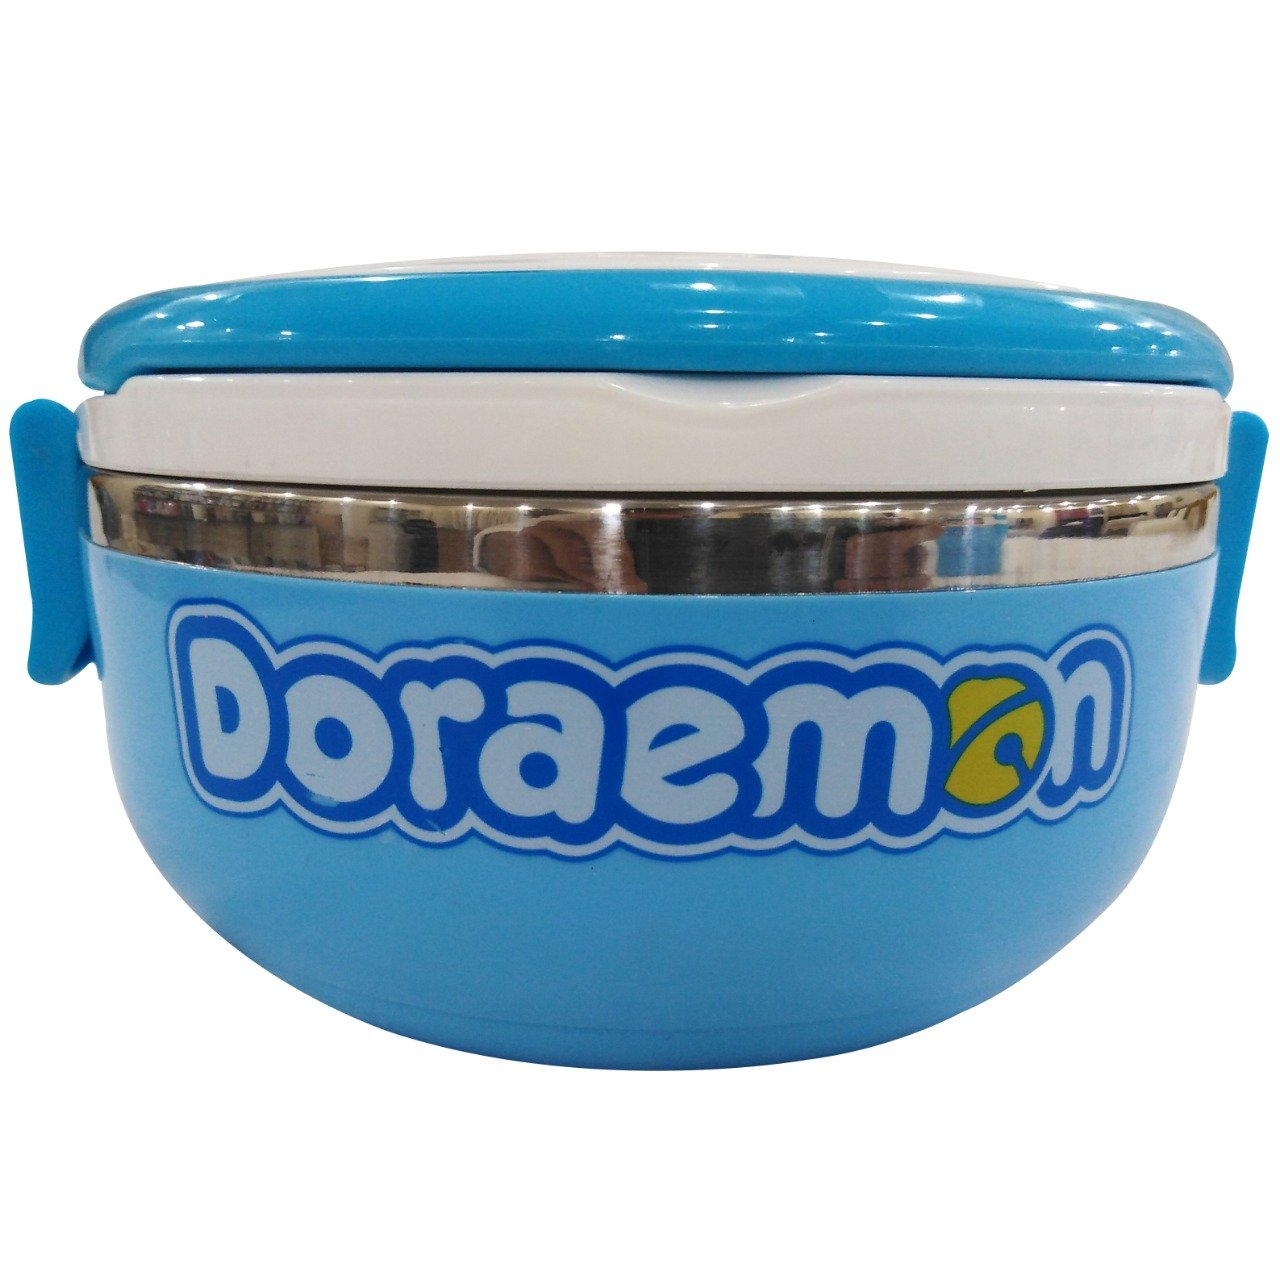 Doraemon - Stainless Steel Lunch Box - waseeh.com